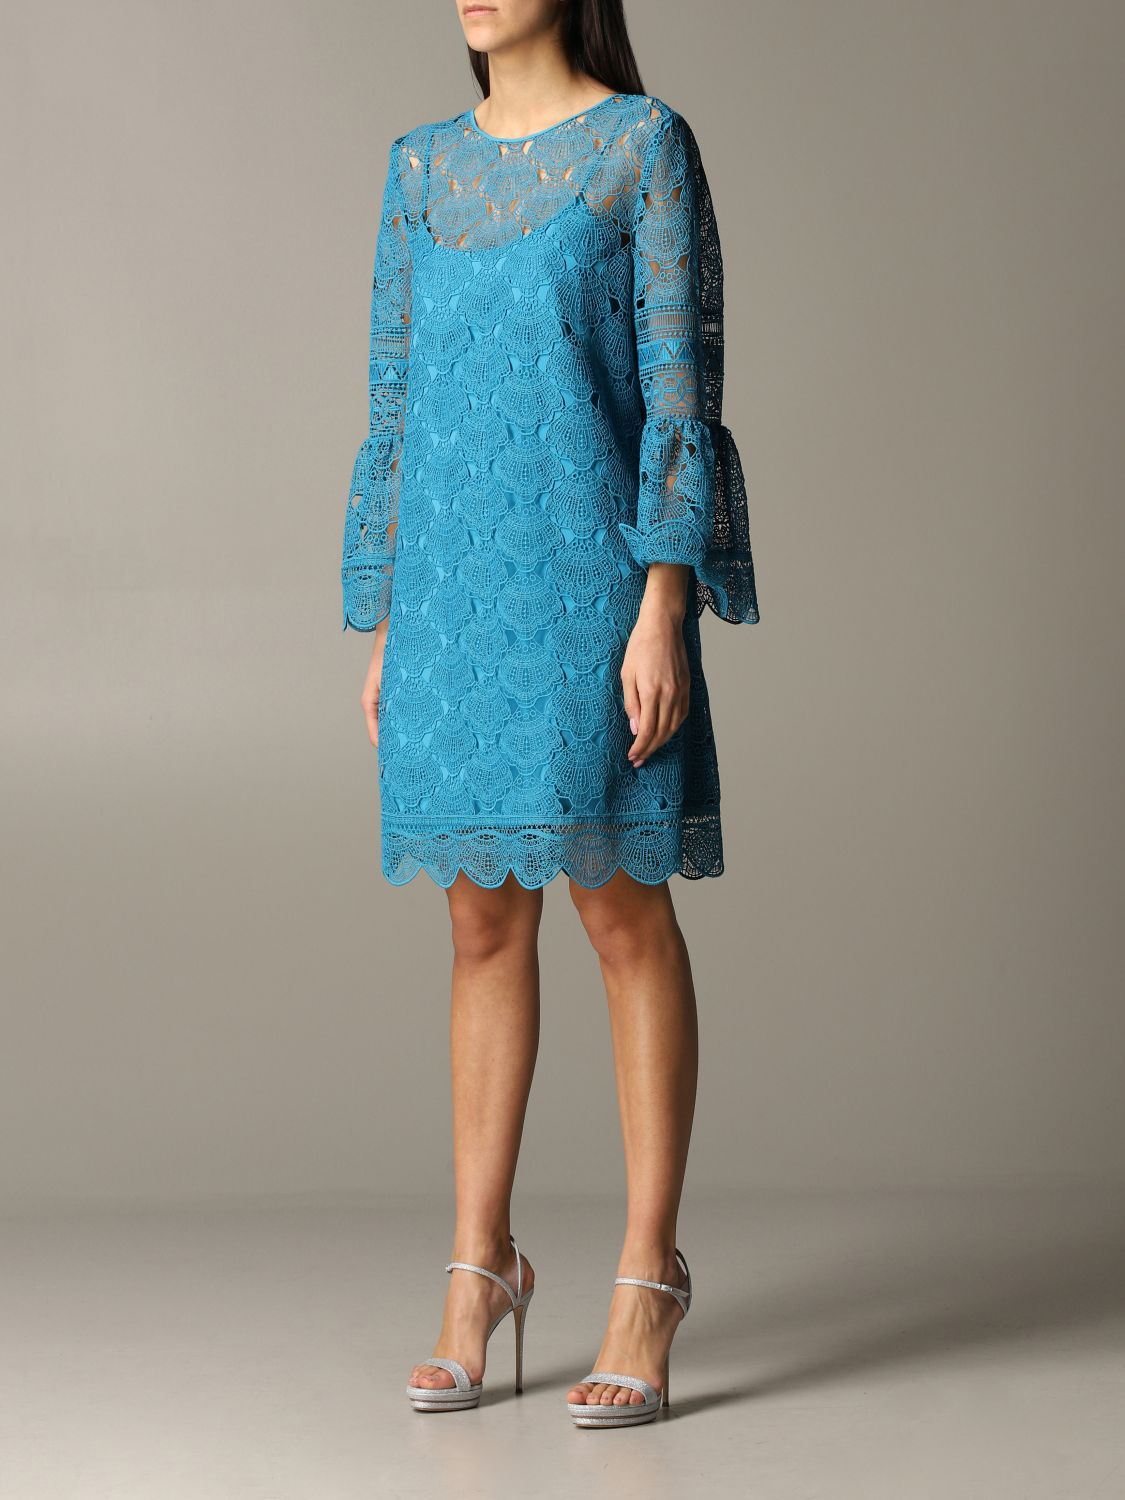 Dress Alberta Ferretti: Dress women Alberta Ferretti gnawed blue 3